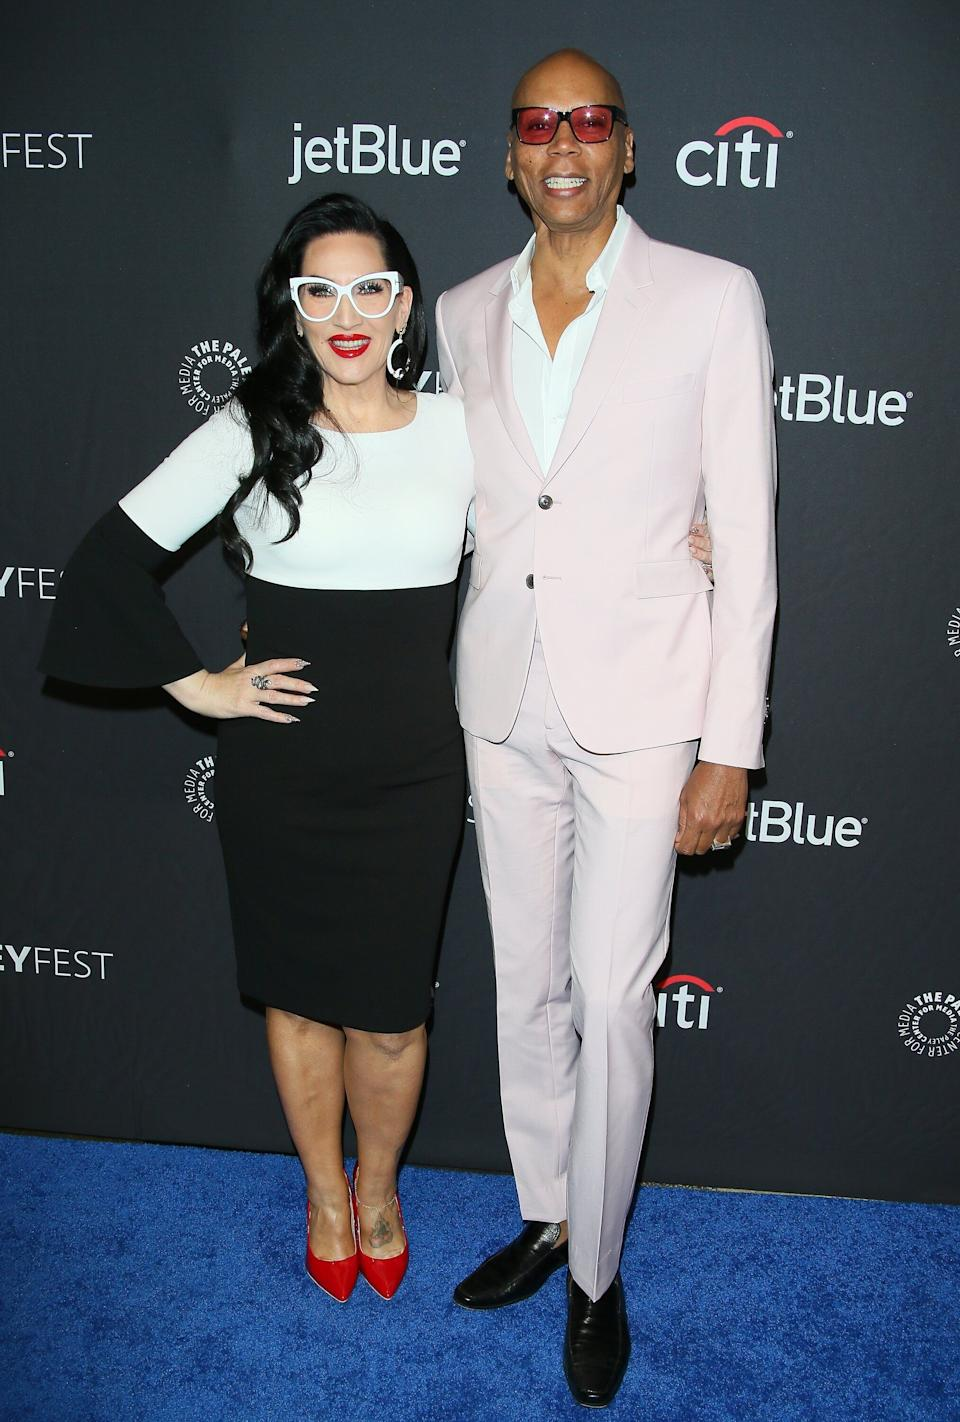 Michelle Visage and RuPaul at PaleyFest in 2019 (Photo: Jean Baptiste Lacroix via Getty Images)